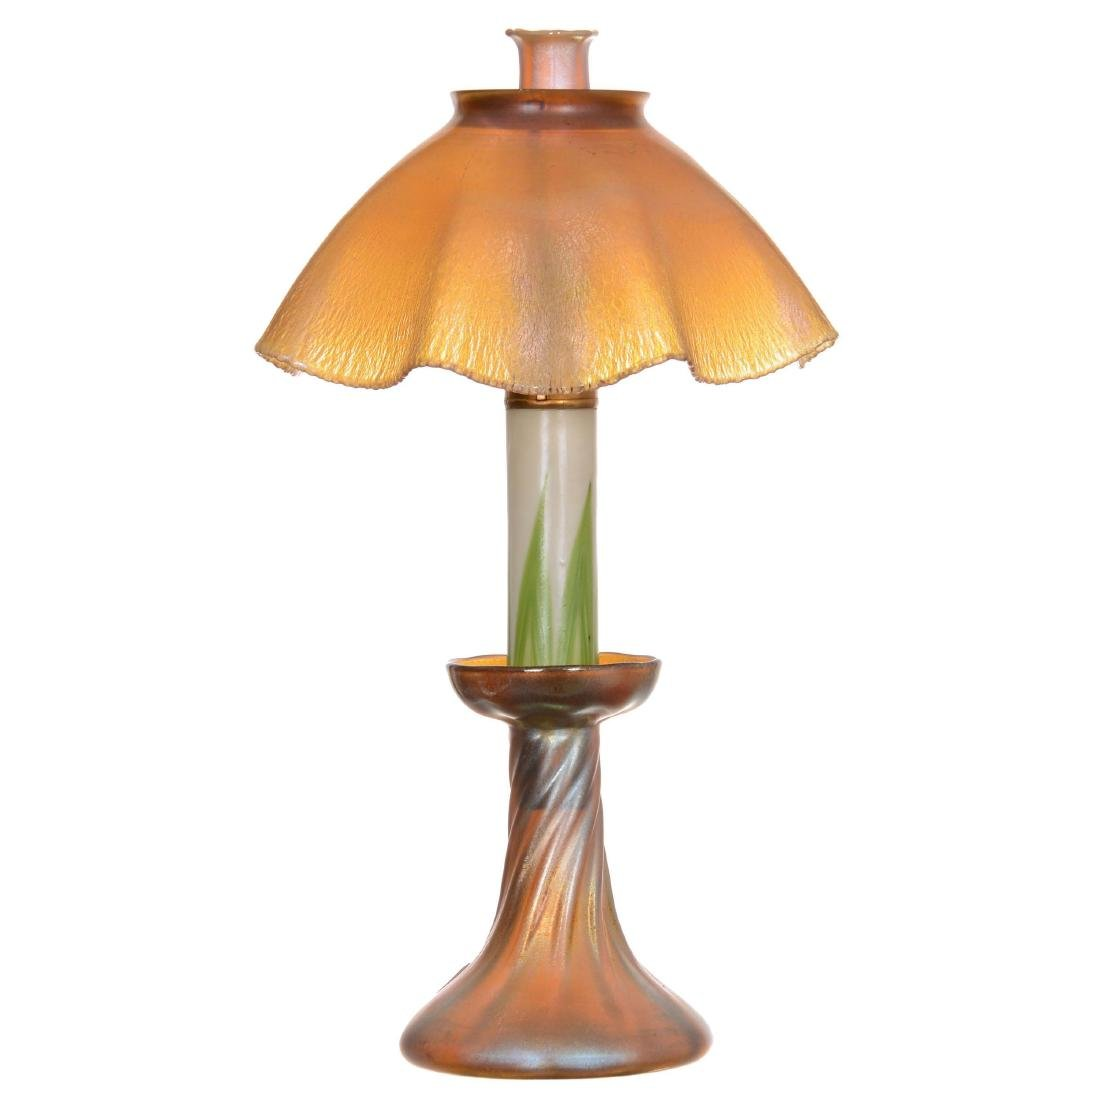 Very Rare Complete Tiffany Candle Lamp